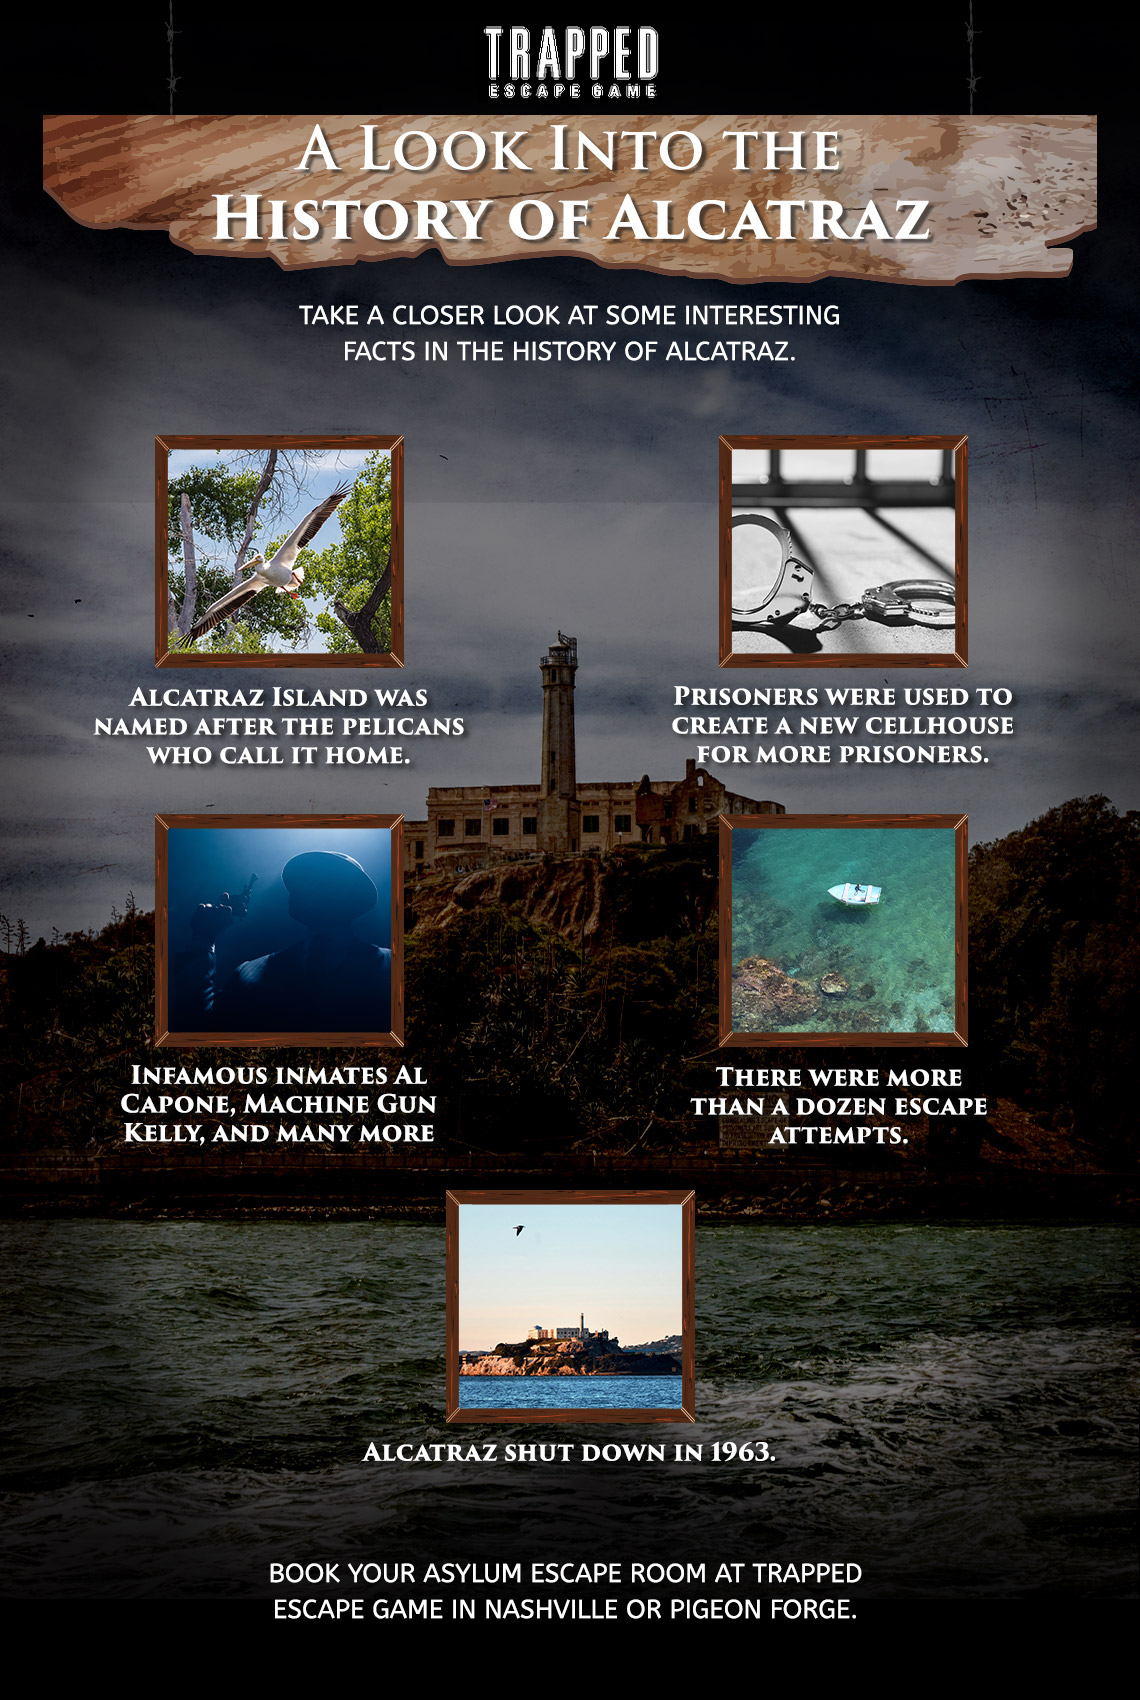 A Look Into the History of Alcatraz Infographic.jpg